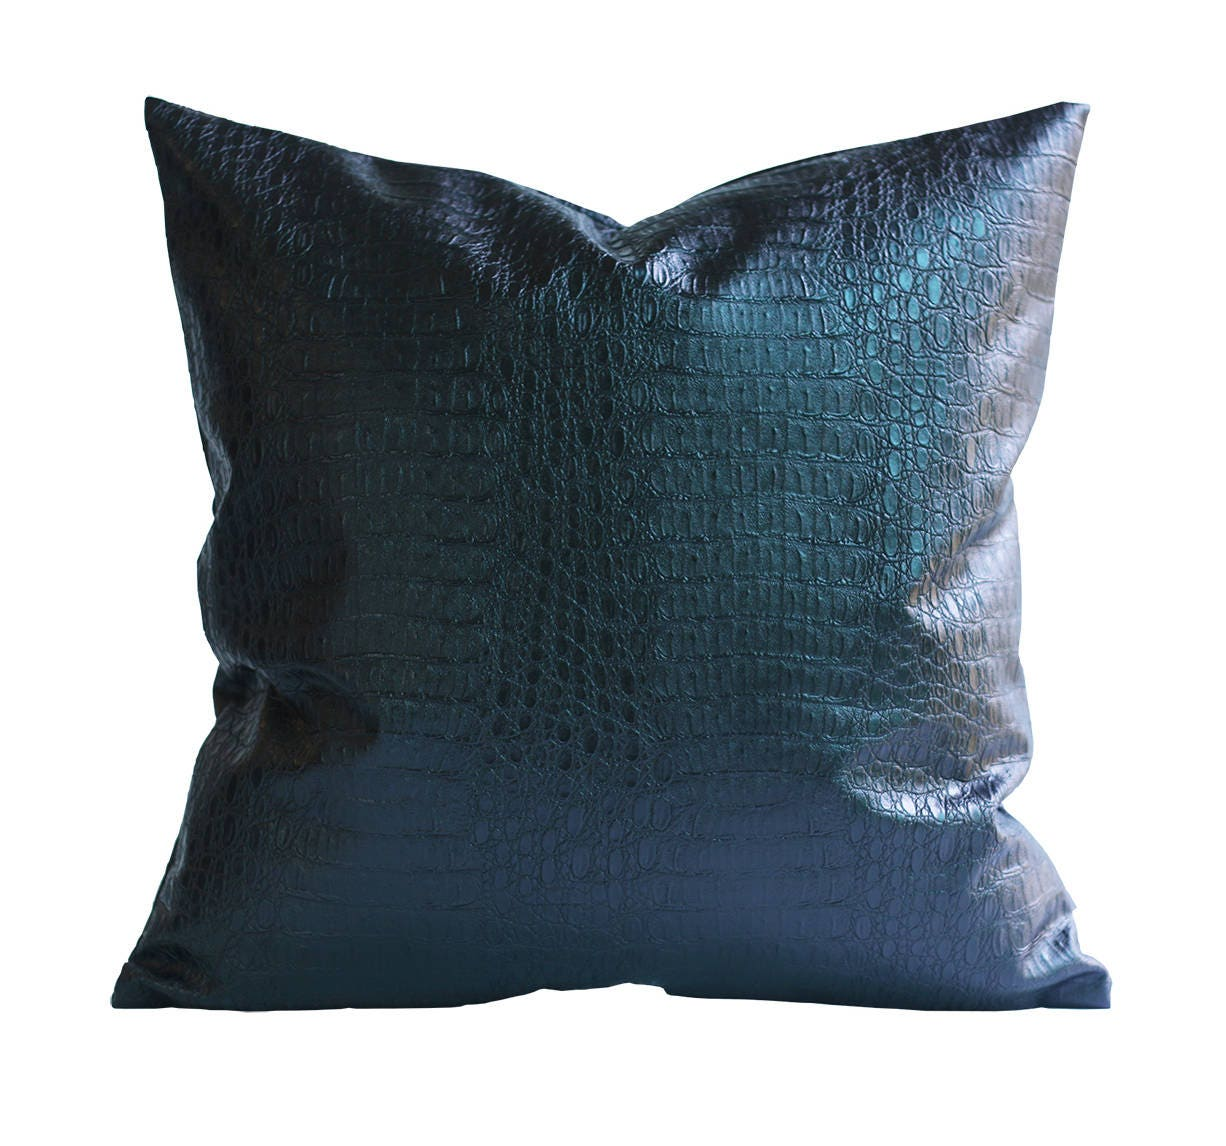 Kdays Croc Faux Leather Black Pillow Cover Decorative For